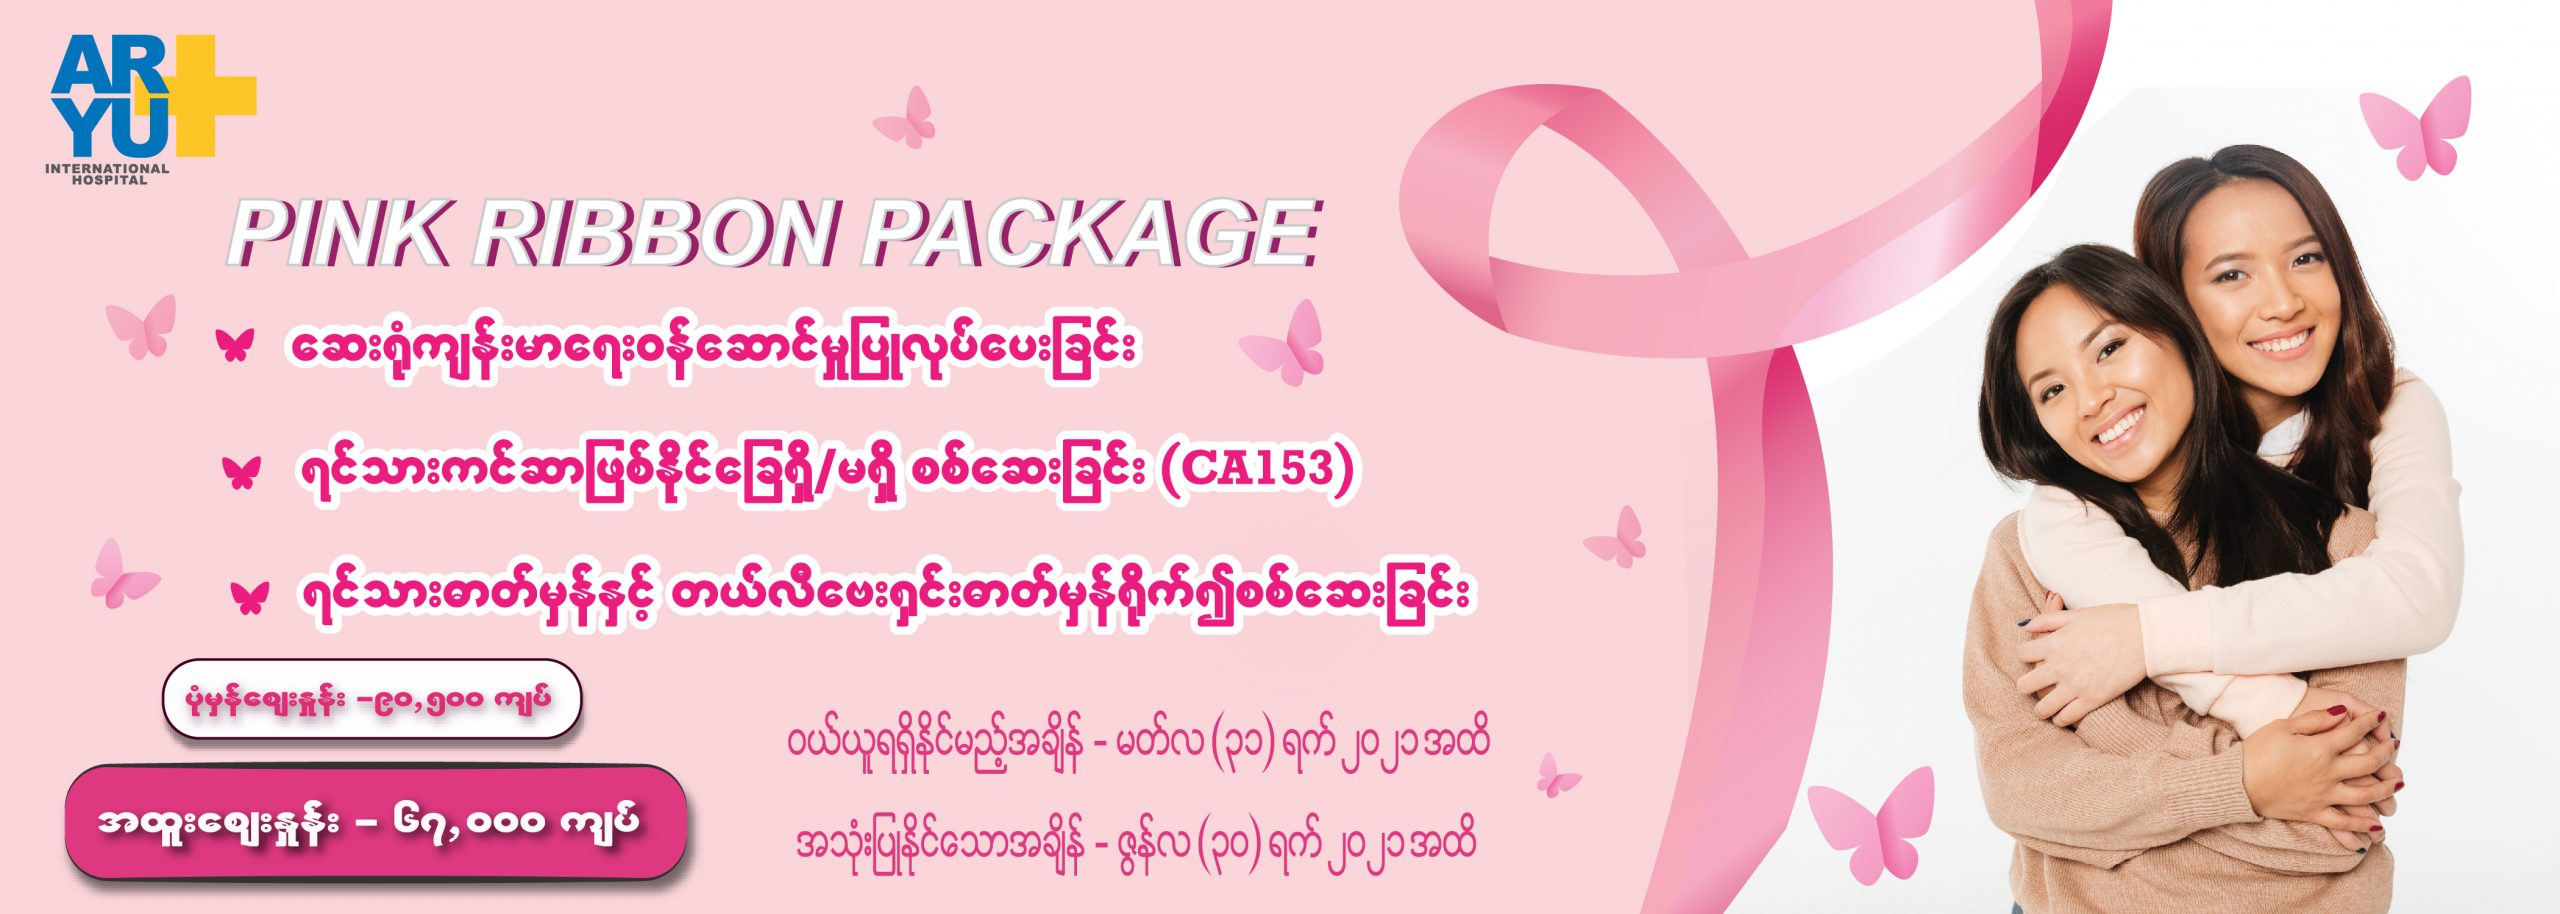 Pink ribbon update 1008x361-01